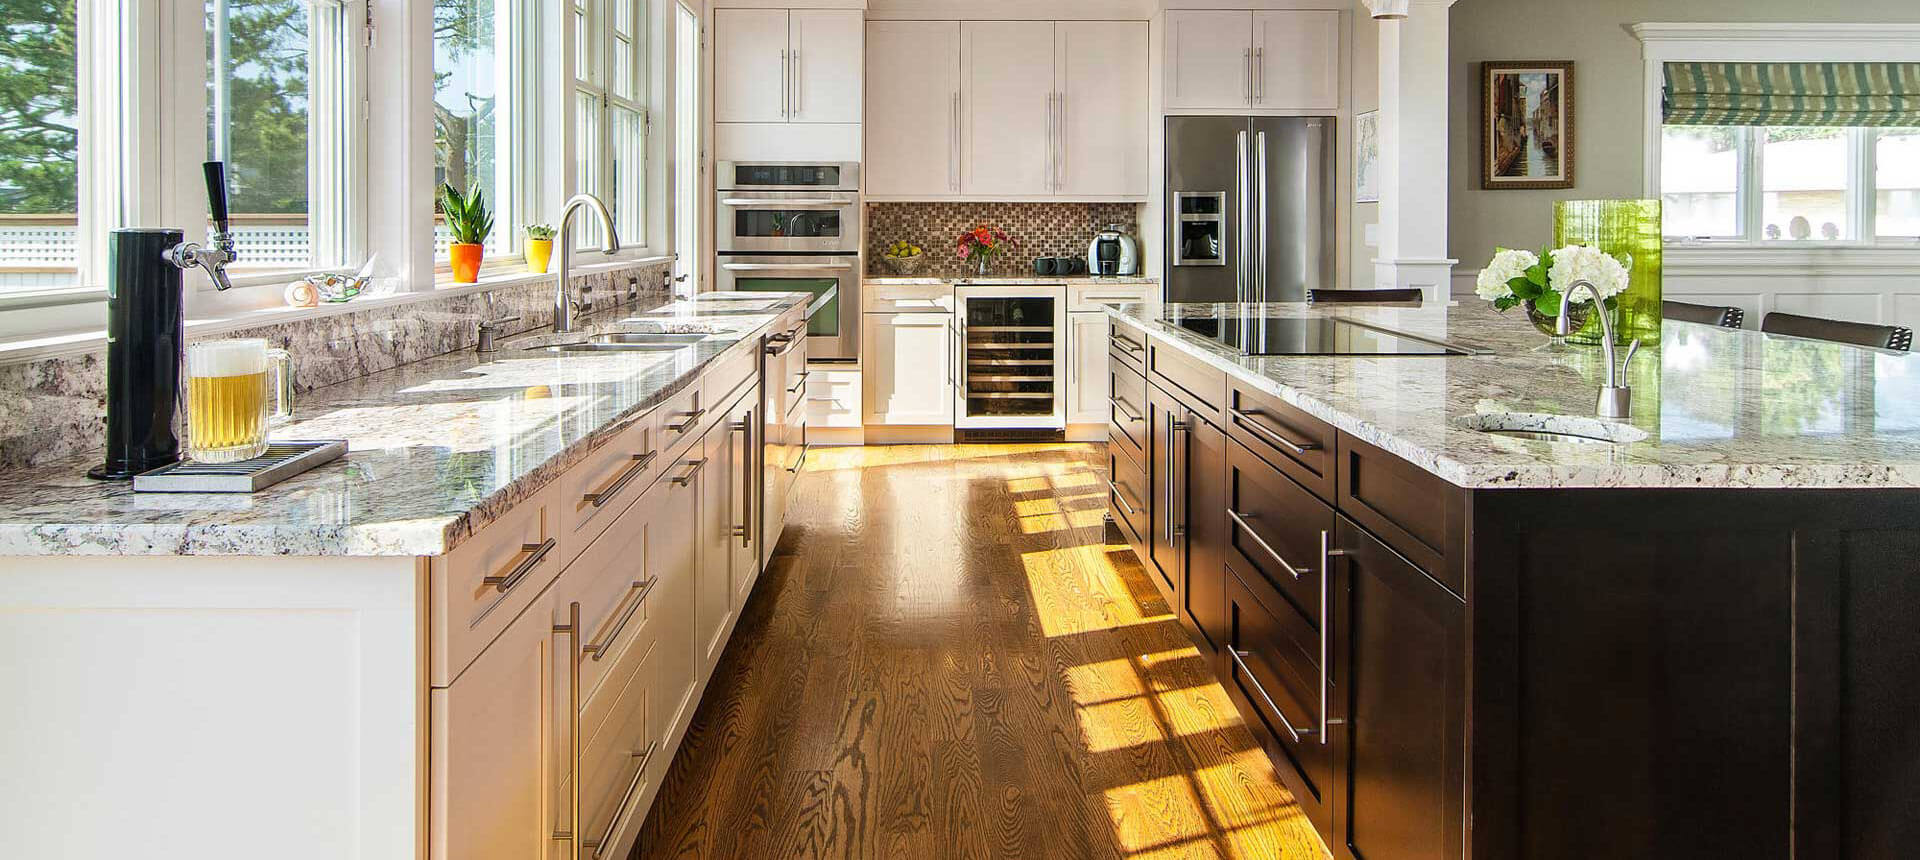 Kitchen design remodeling in north haven ct the for Kitchen design companies